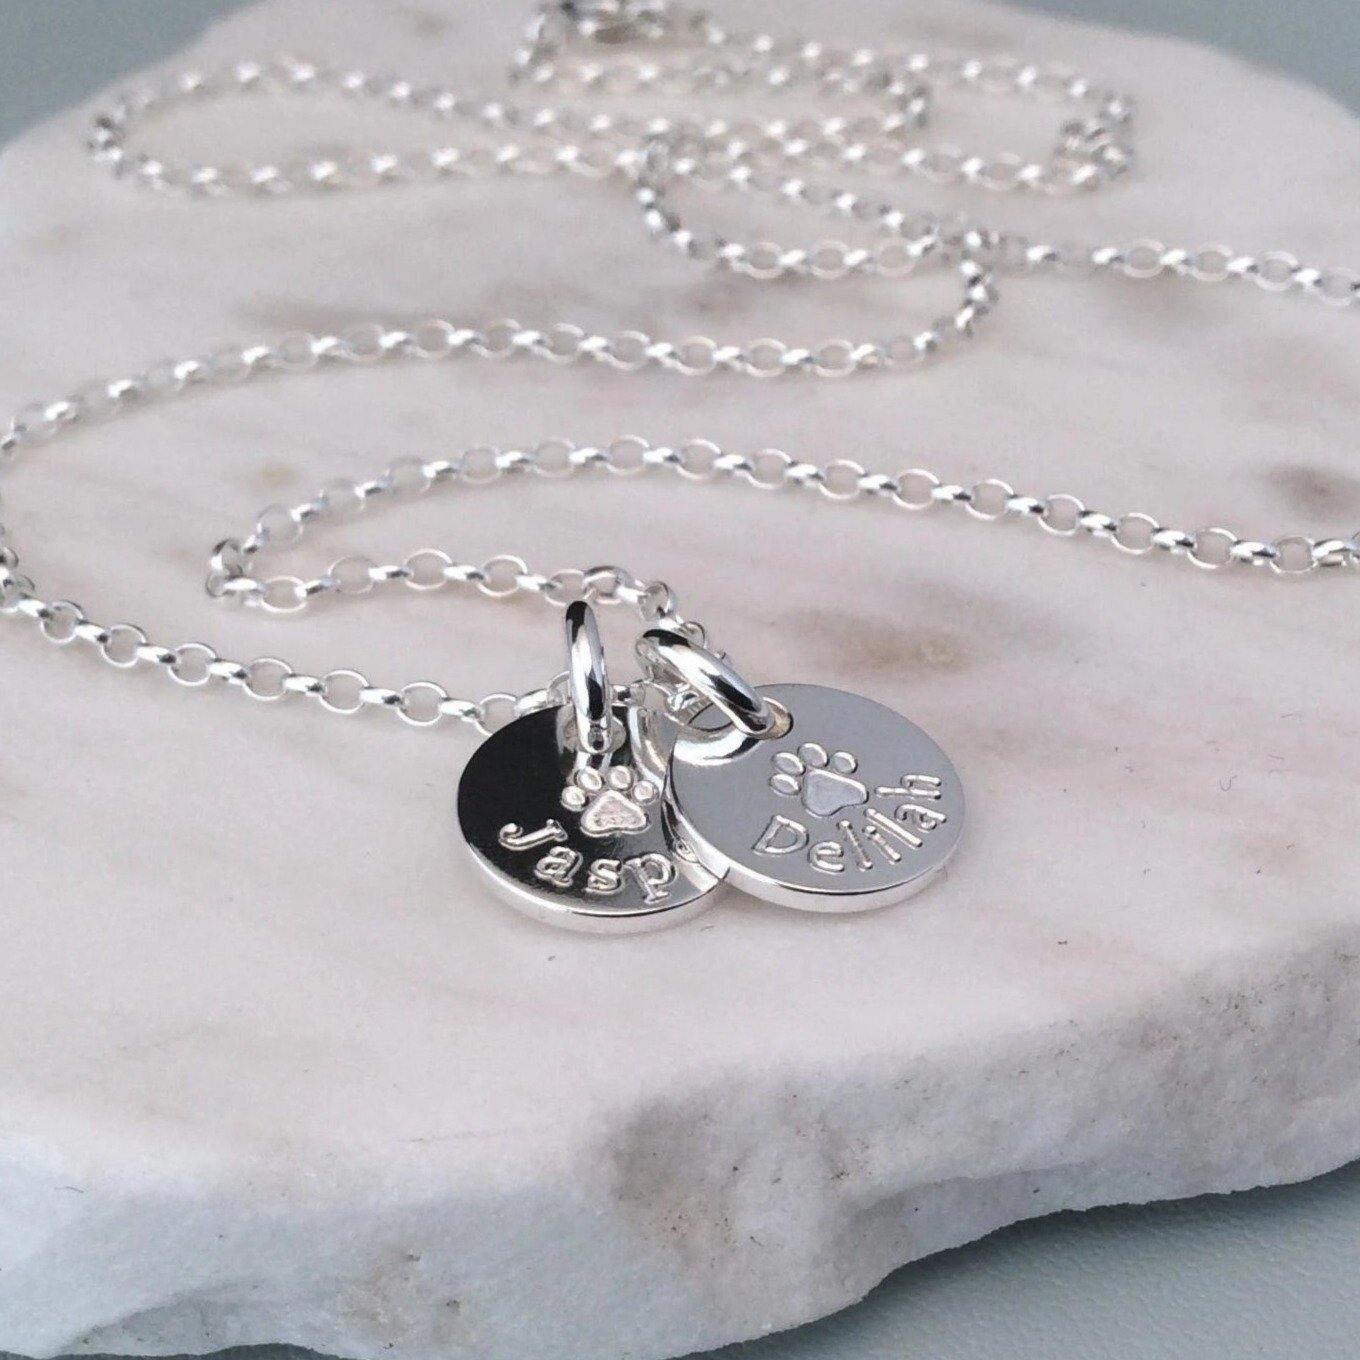 Paw print necklace with engraved paw print in centre and pets name underneath.  On tiny 1cm wide disc